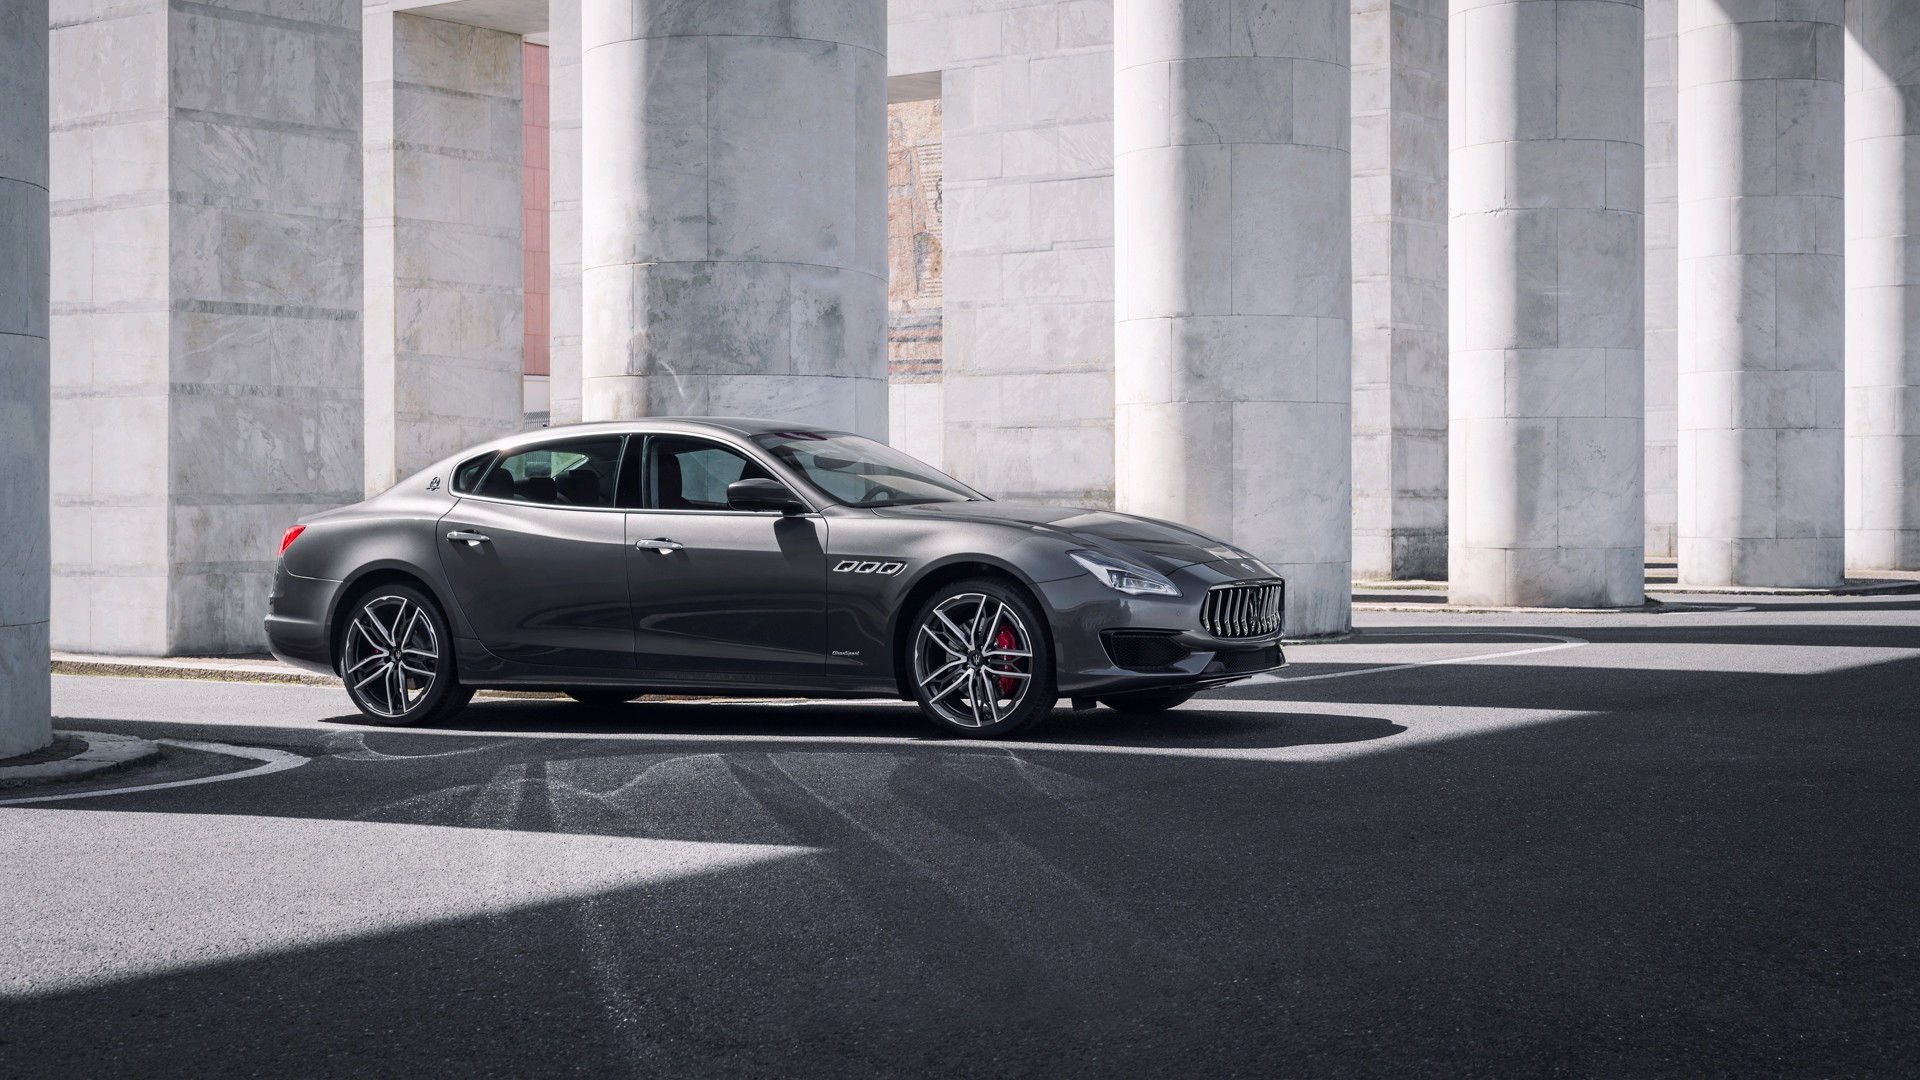 The race-bred but elegant saloon Maserati Quattroporte MY19